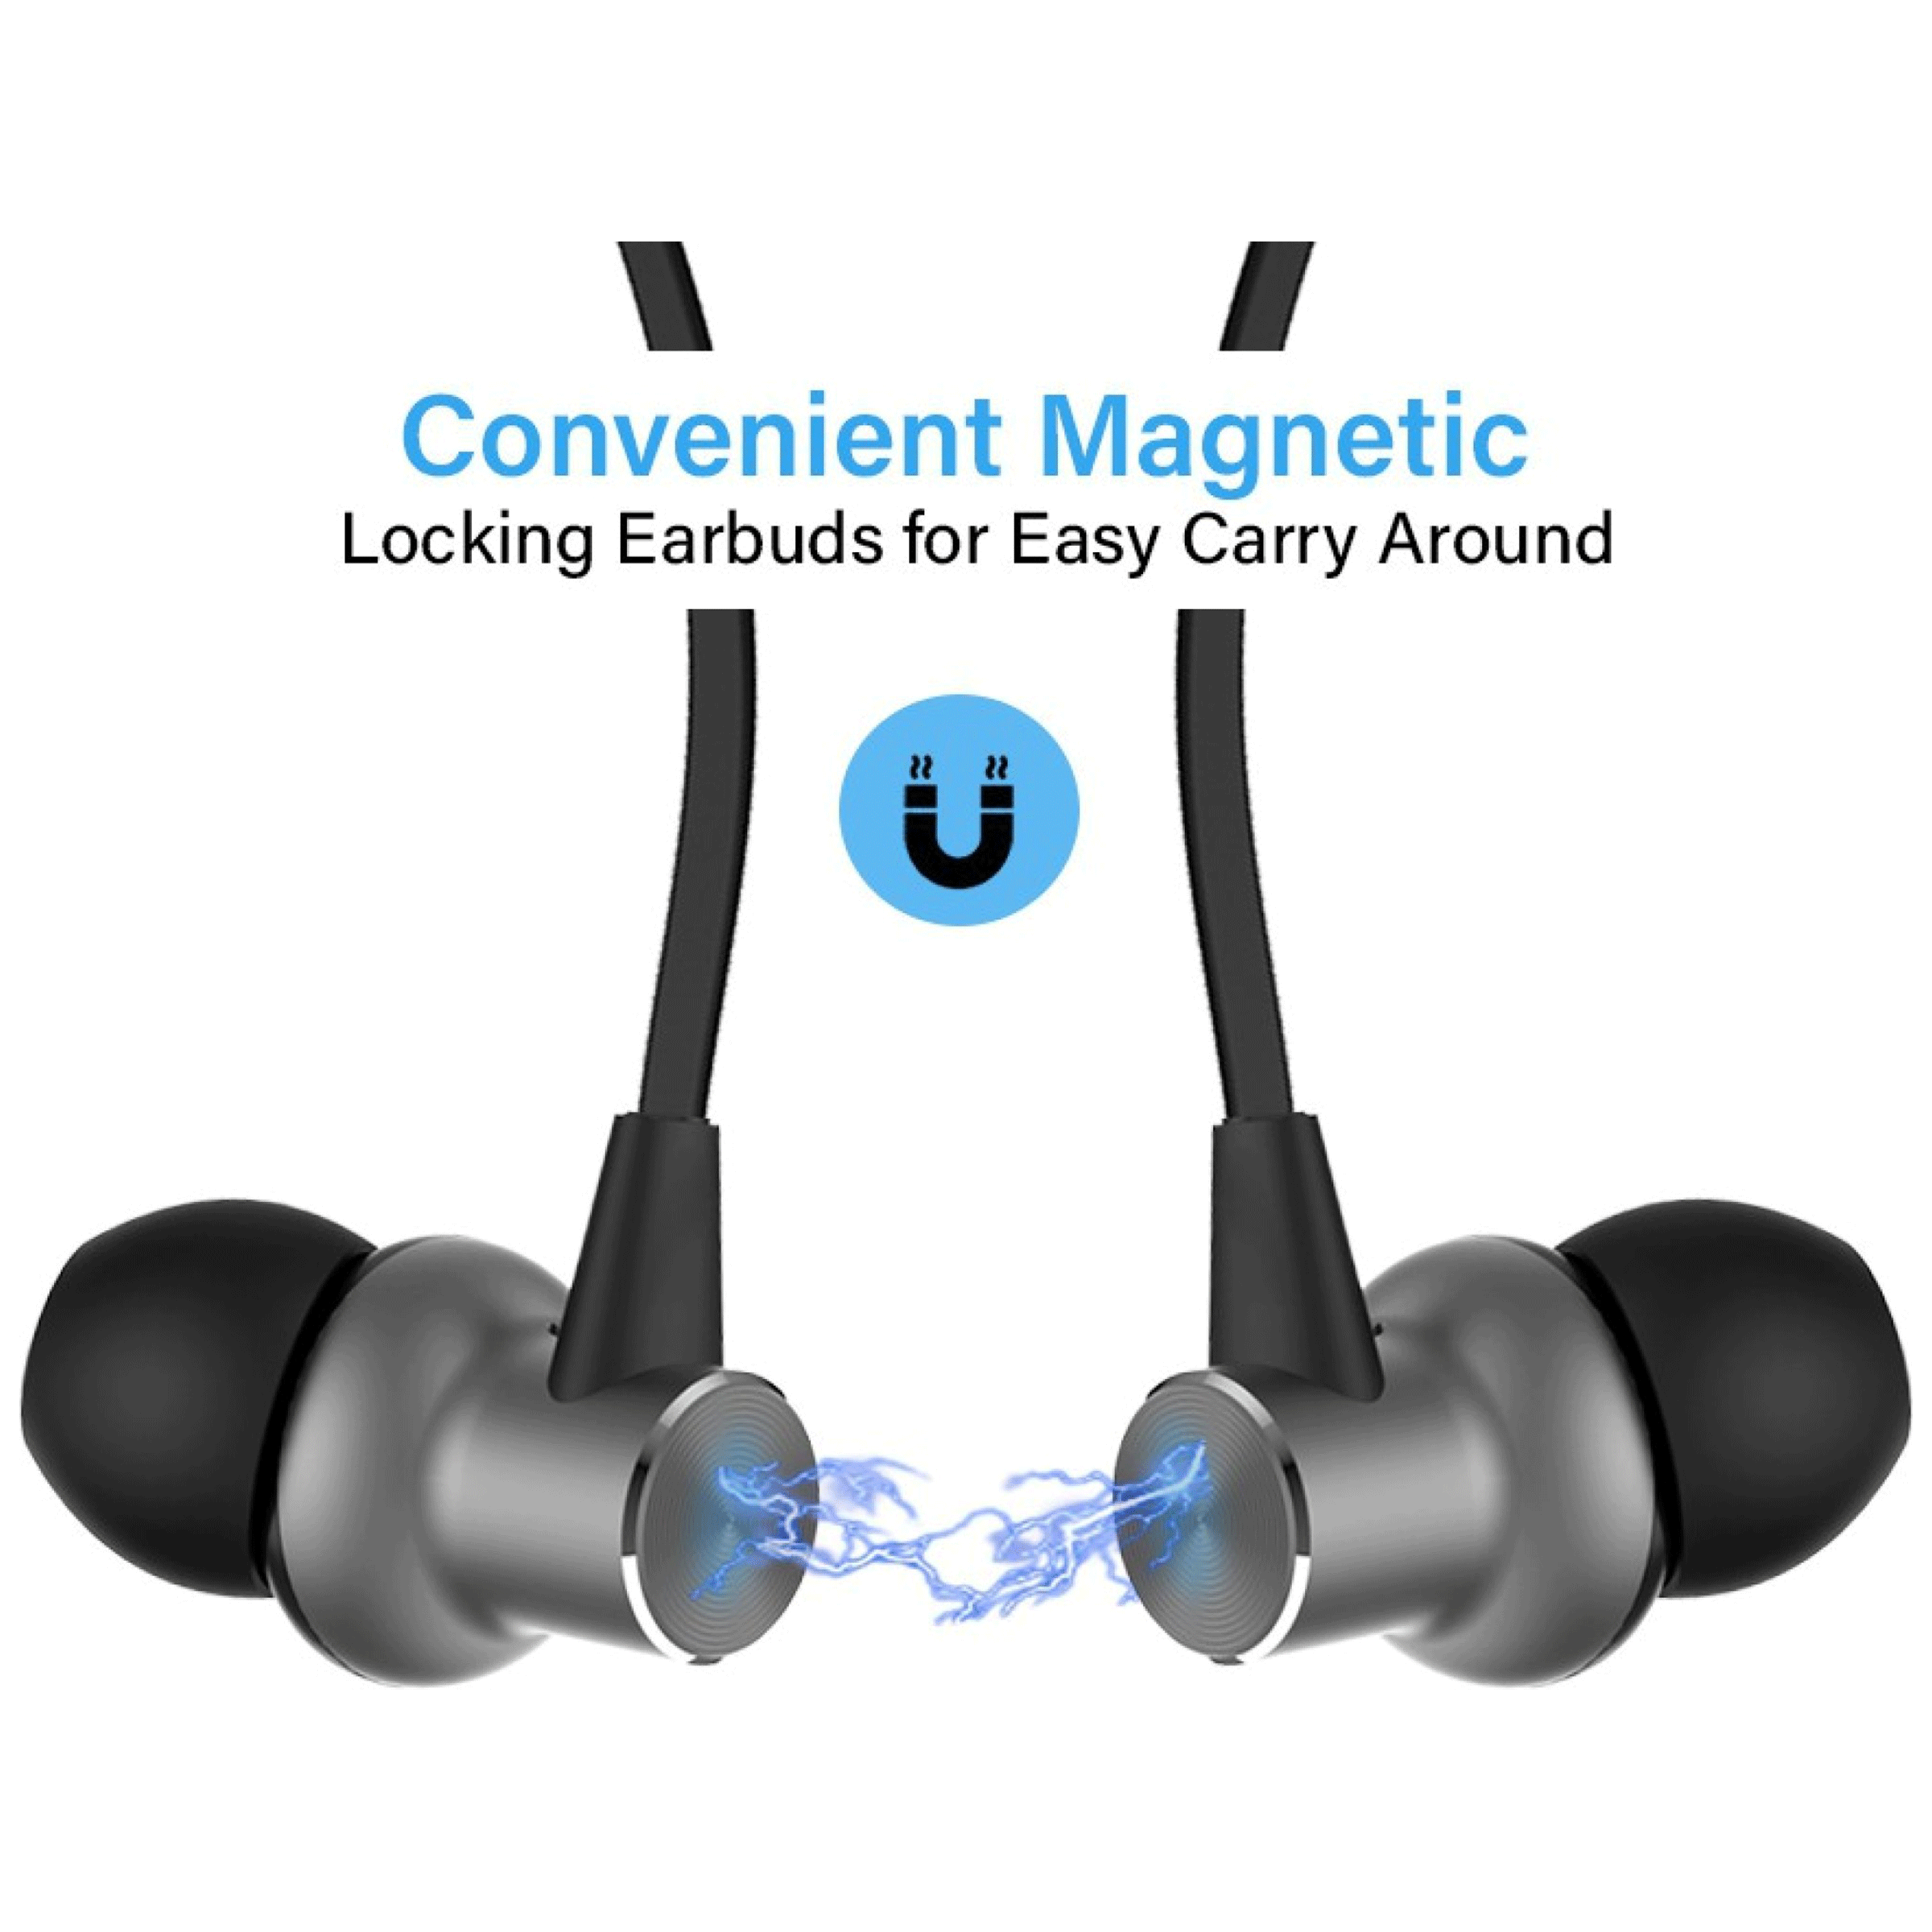 pTron Avento Classic In-Ear Passive Noise Cancellation Wireless Earphone with Mic (Bluetooth 5.0, Magnetic Locking, 140317896, Black/Grey)_3